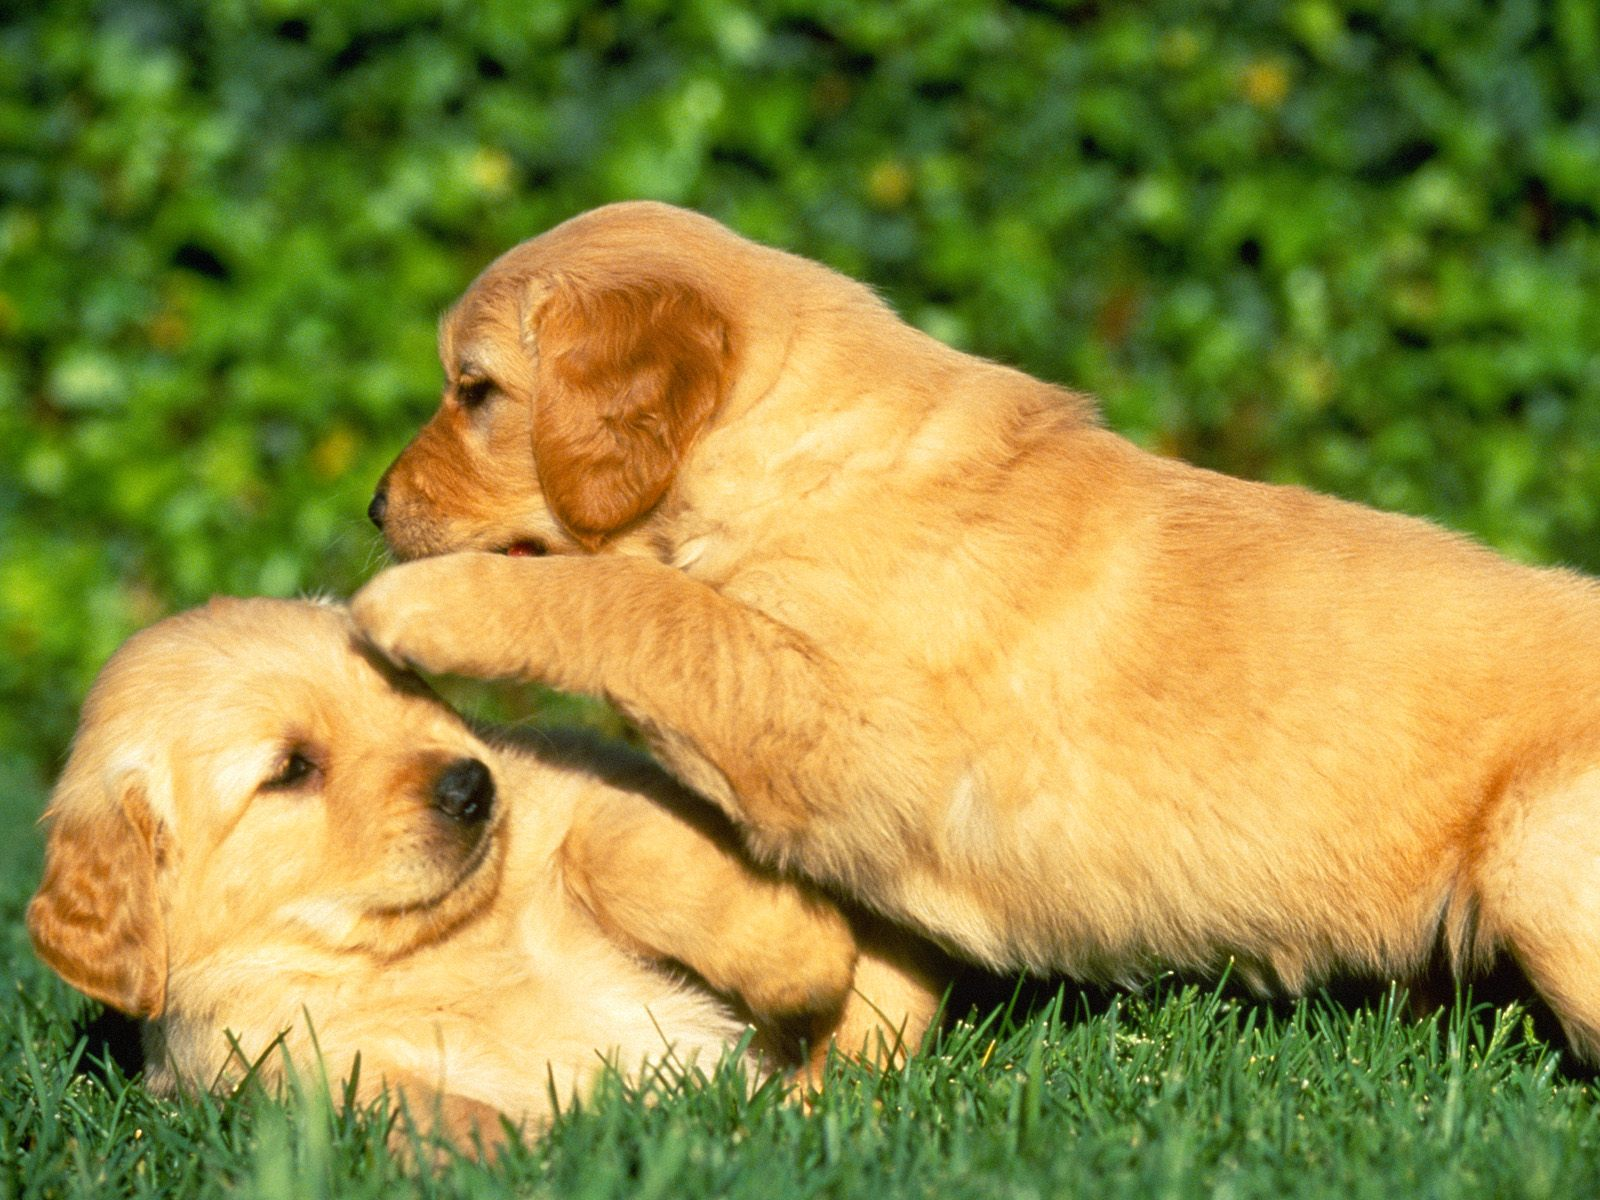 Puppy Power Wallpapers HD Wallpapers 1600x1200